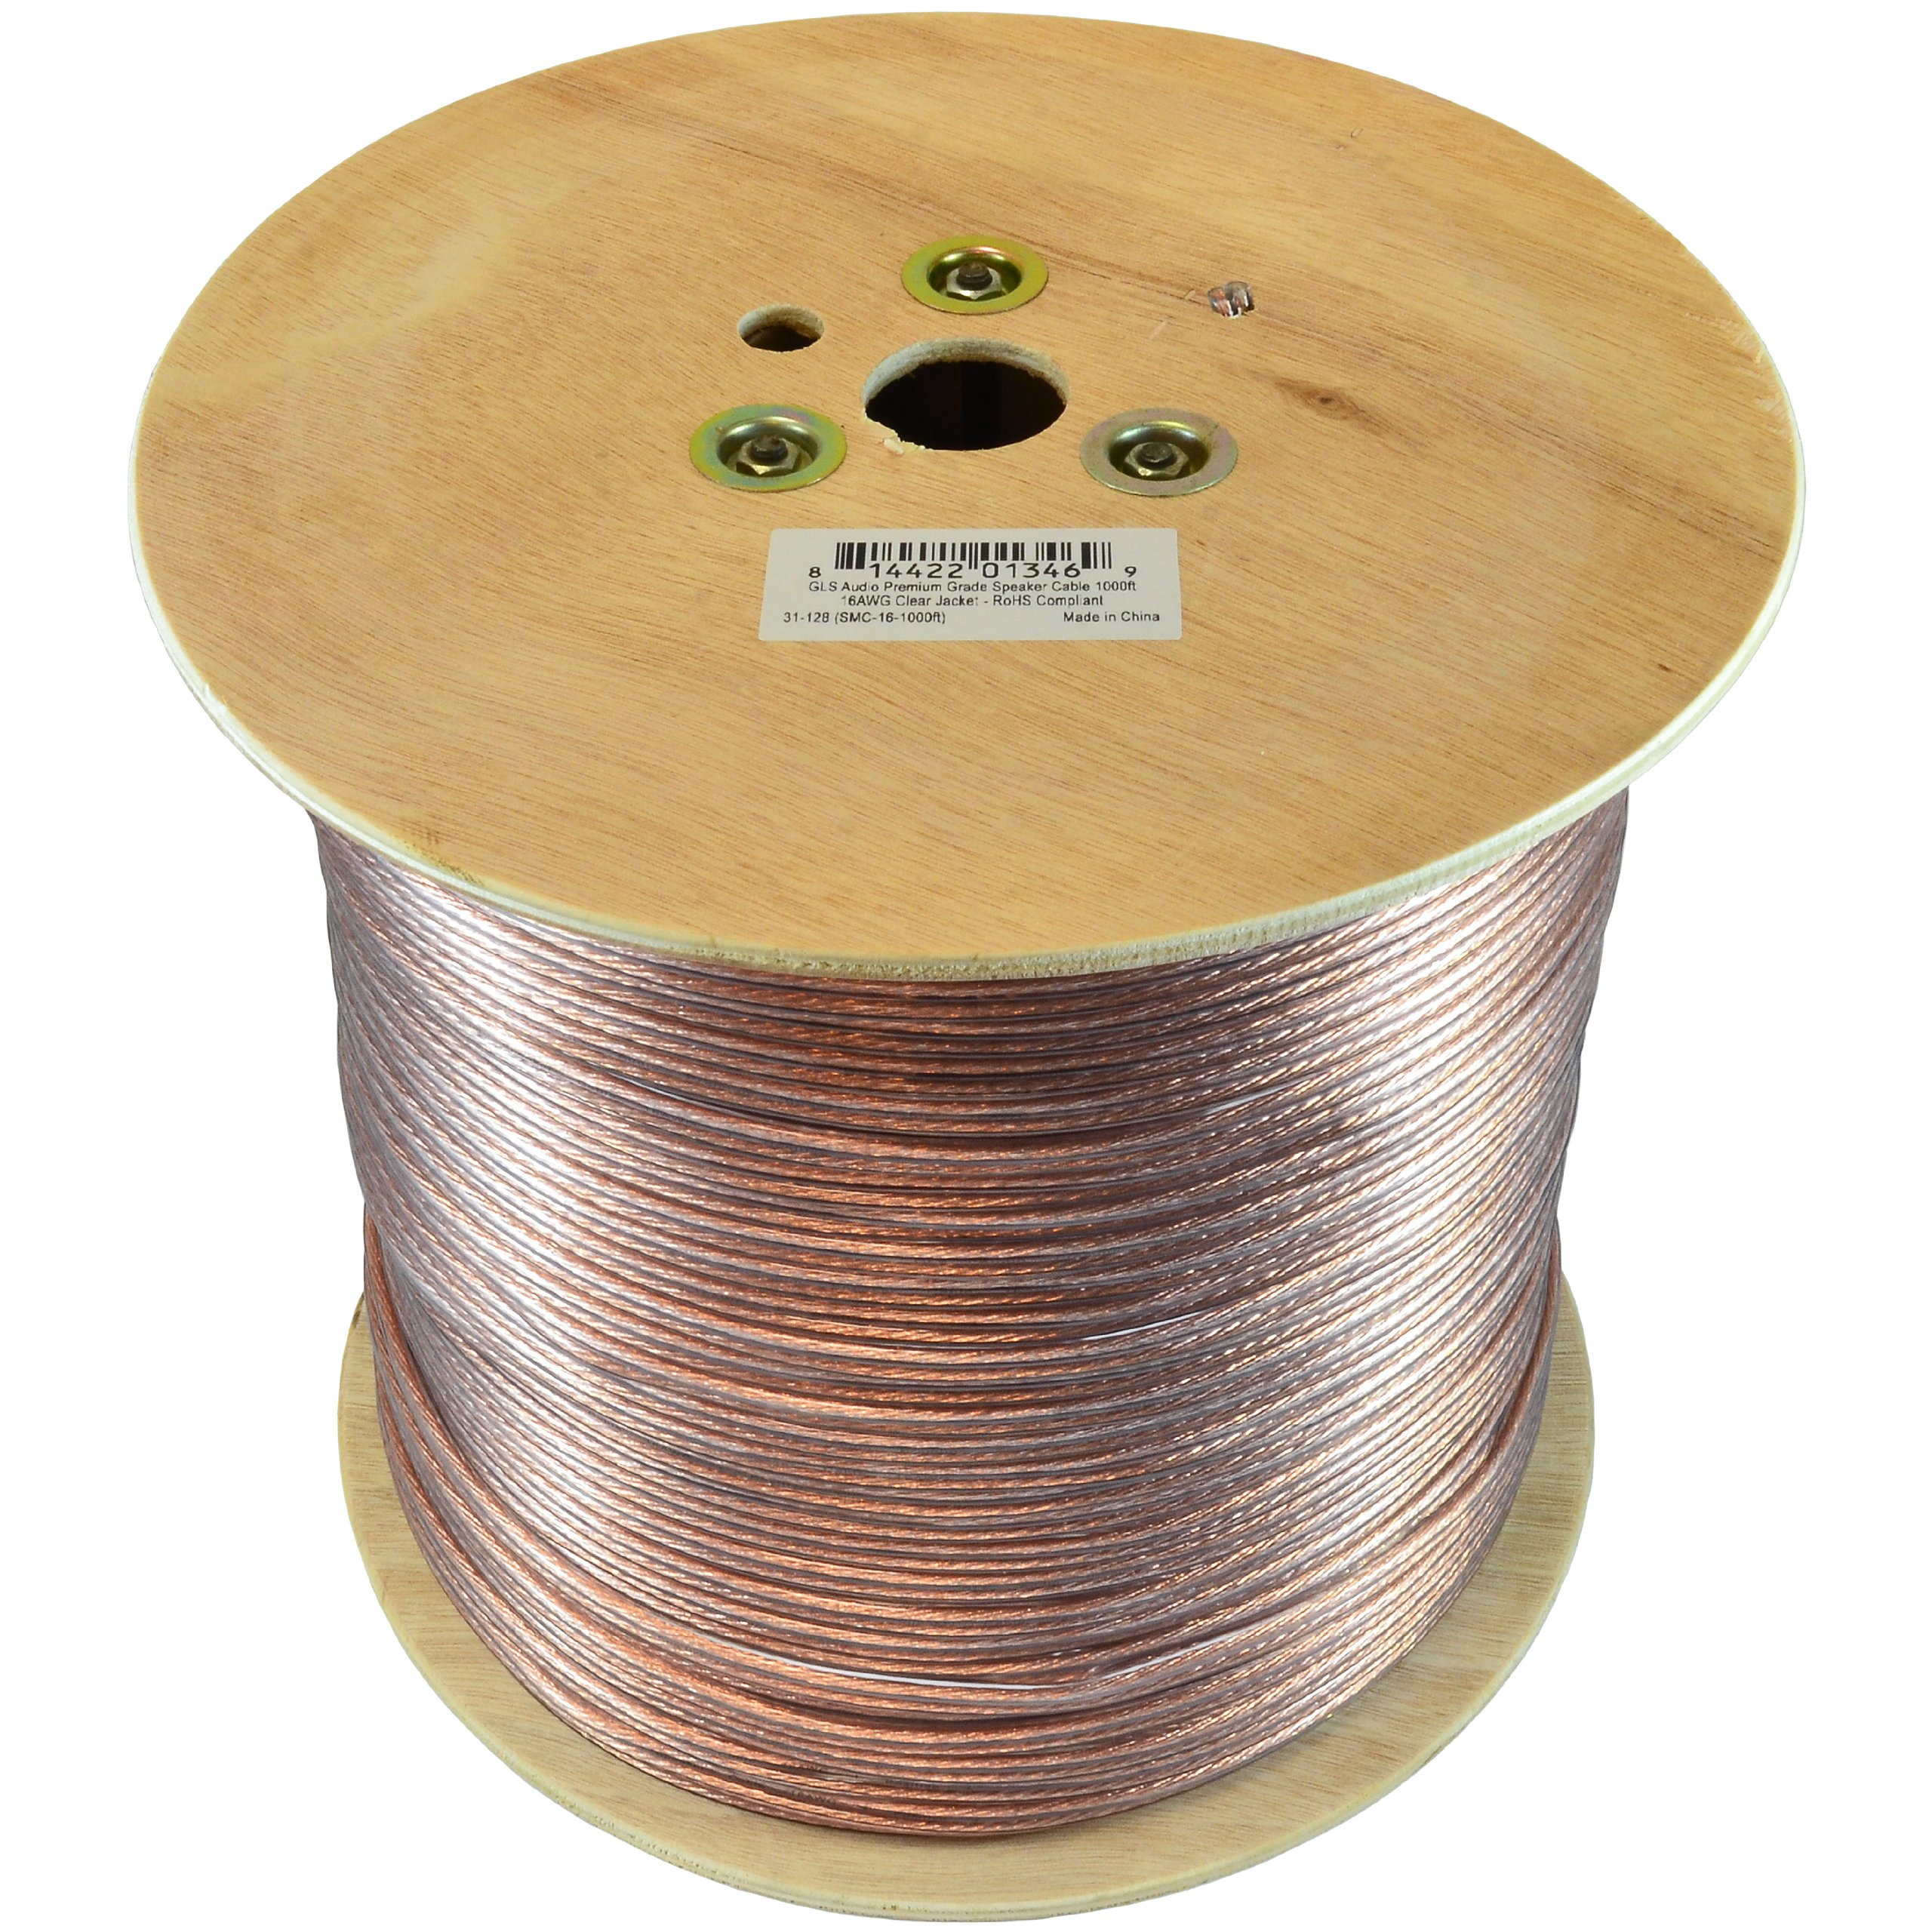 GLS Audio Premium 16 Gauge 1000 Feet Speaker Wire - True 16AWG Speaker Cable 1000ft Clear Jacket 1000' Spool Roll 16G 16/2 Bulk by GLS Audio